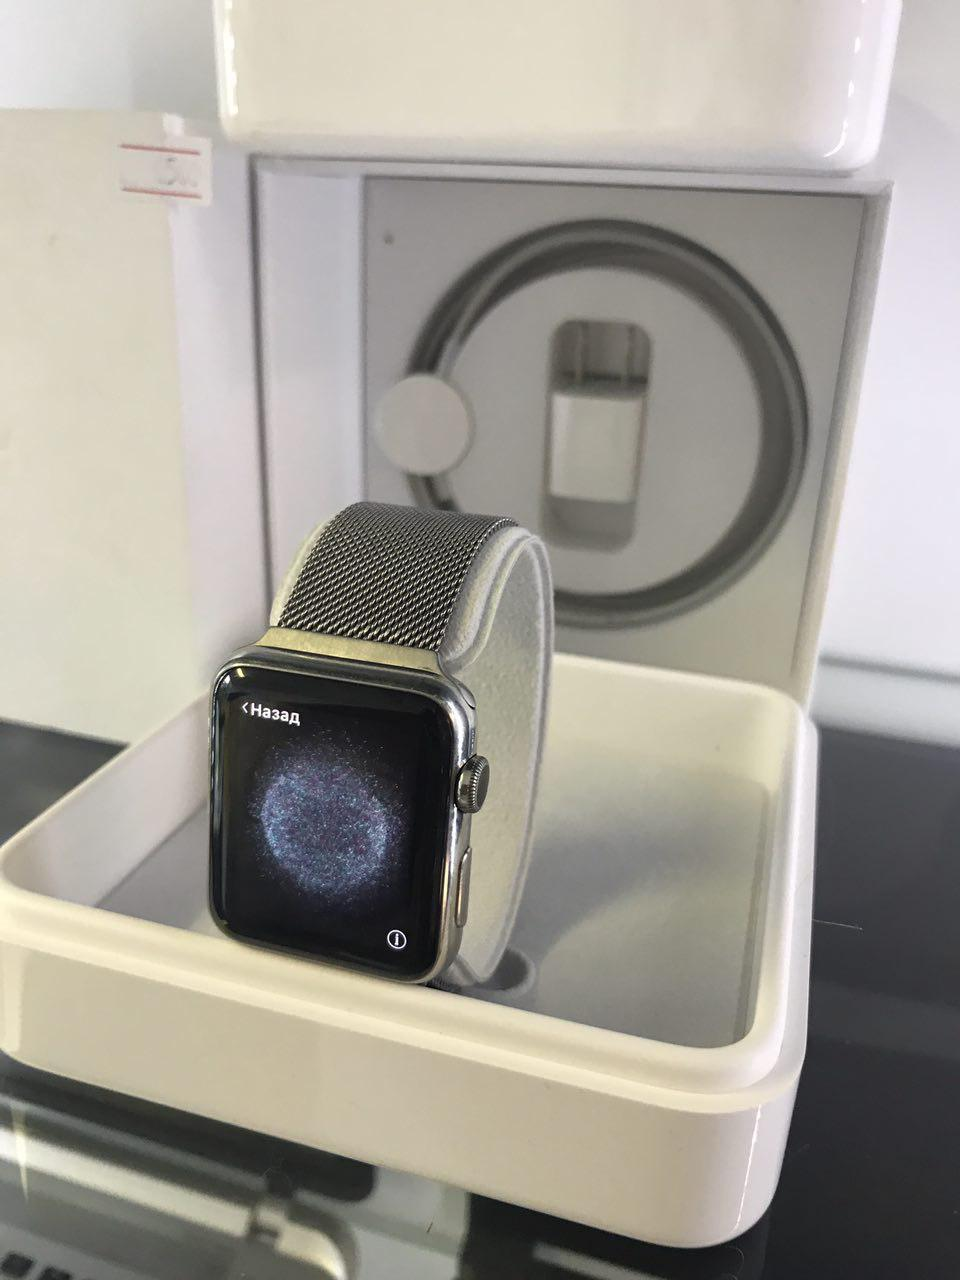 "Watch Apple Watch 42mm Stainless Steel Case  Classic - Интернет магазин ""iMobilko"" в Киеве"